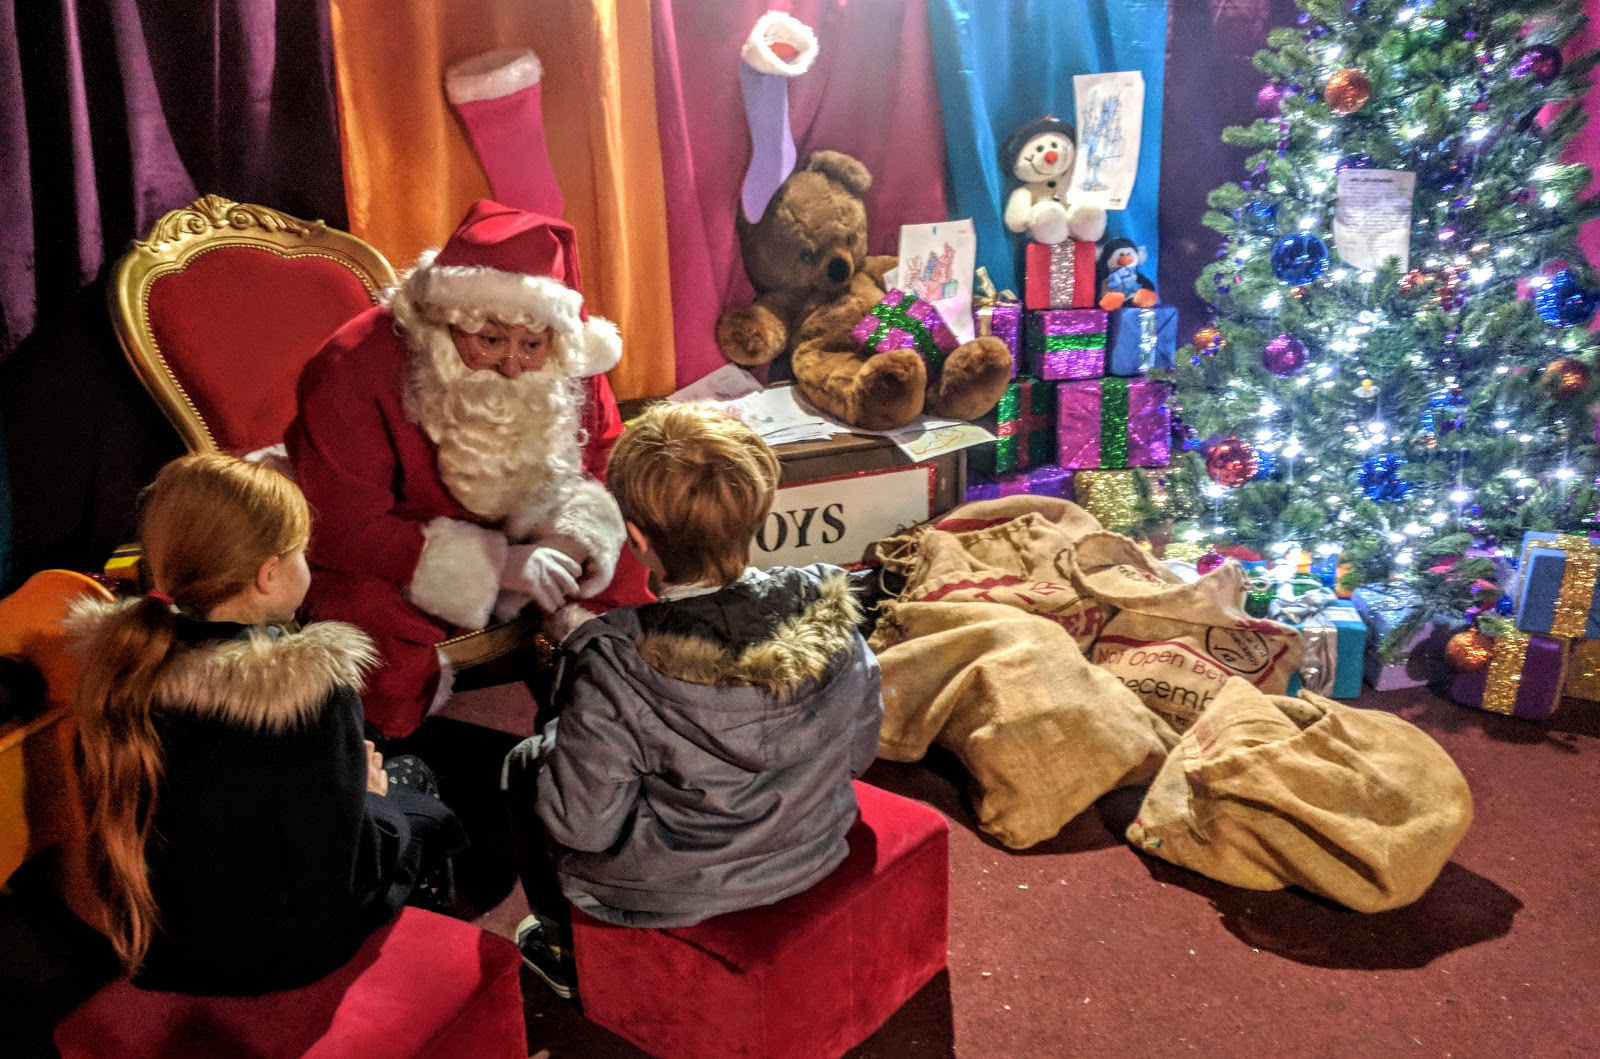 Santa S Grotto Colouring With Visiting The FREE Claus And Festive Fun At Intu Metrocentre